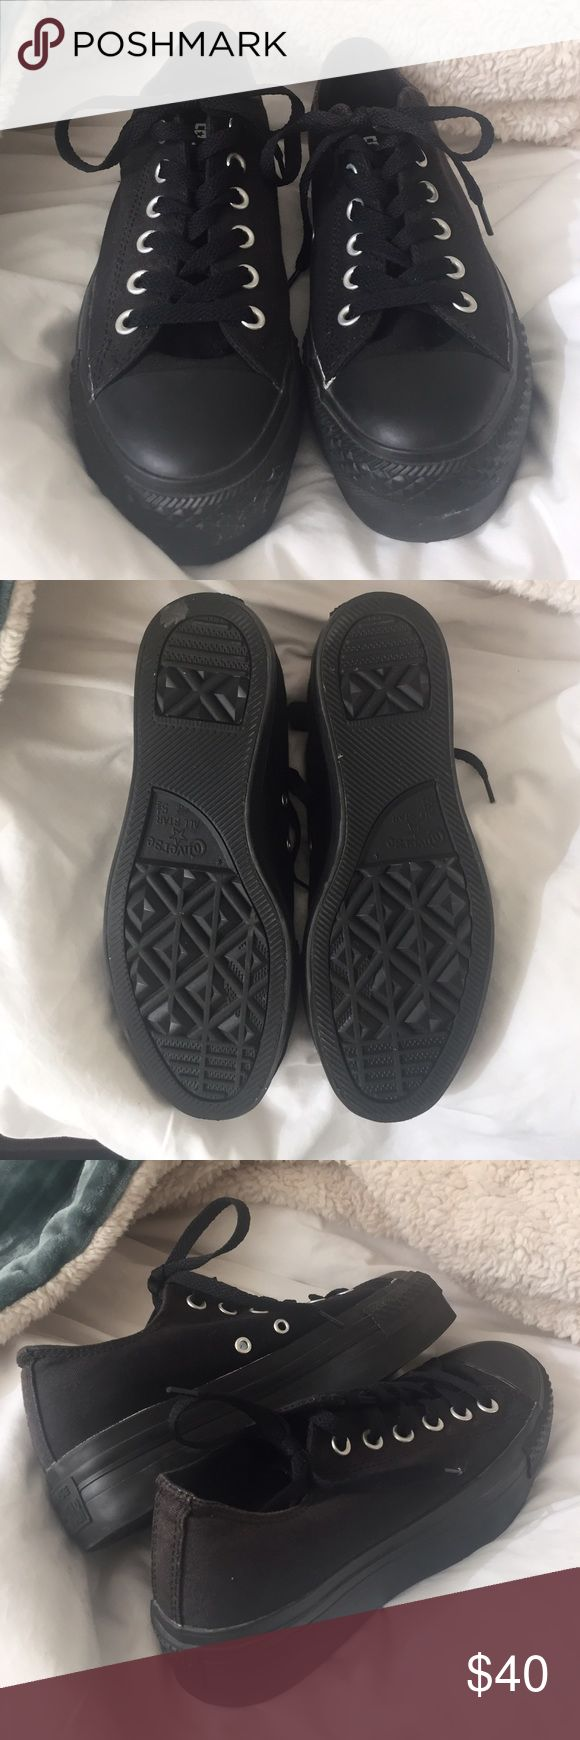 ALL BLACK PLATFORM CONVERSE A new never worn pair of all black platform converse. In new condition and matches with just about anything! Converse Shoes Sneakers